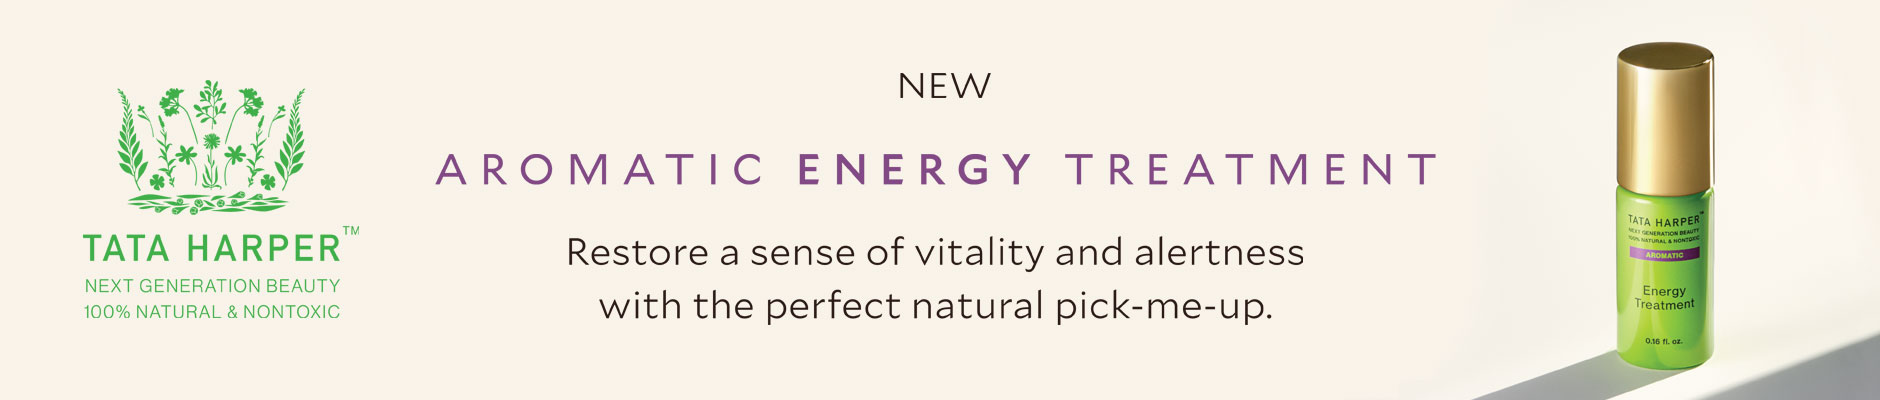 Tata Harper: New - aromatic energy treatment - Restore a sense of vitality and alertness with the perfect natural pick-me-up.